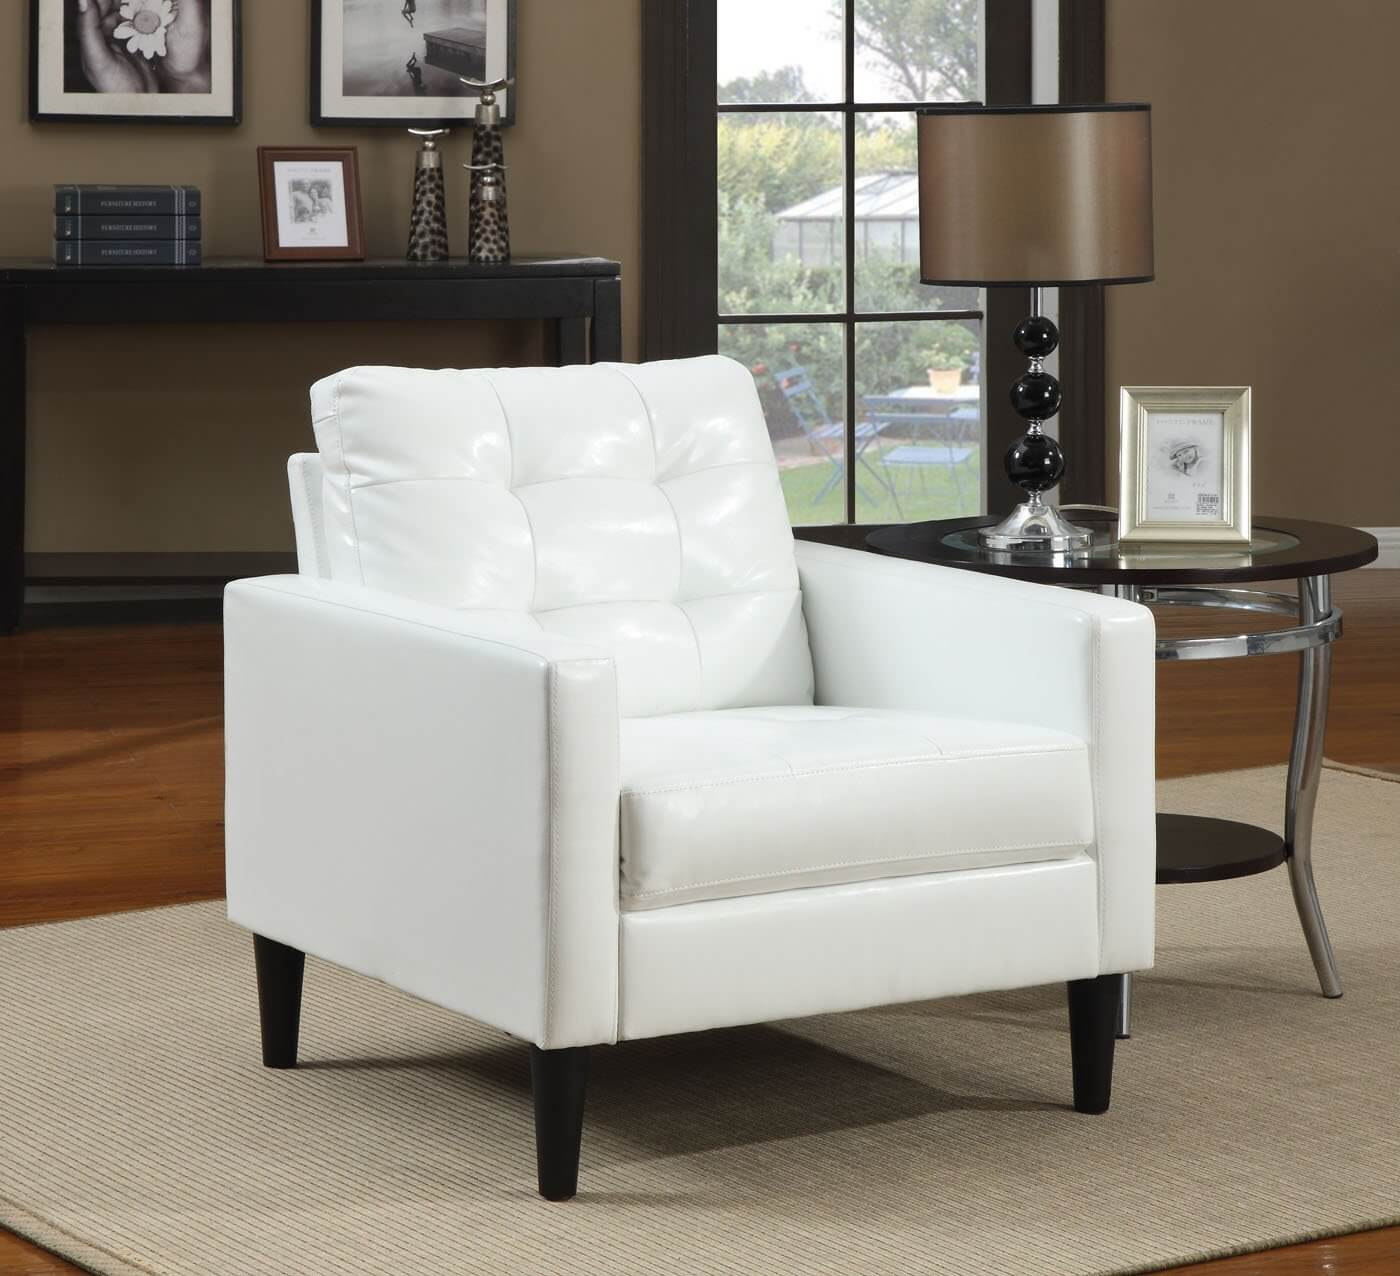 Armchairs For Living Room. Balin collection accent chair from ACME features stuffed cushion back in  polyurethane faux white leather 37 White Modern Accent Chairs for the Living Room